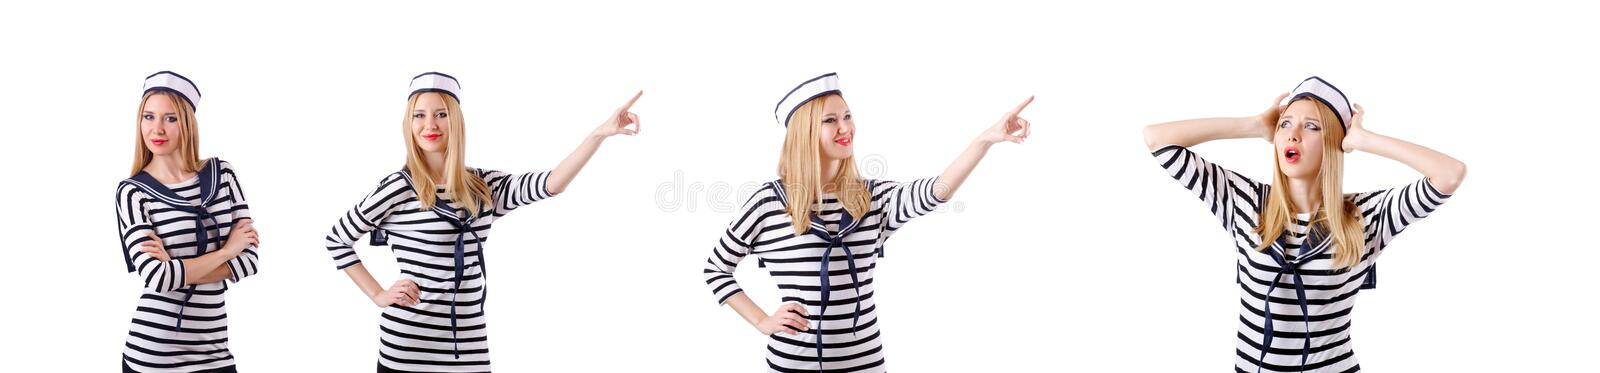 The woman sailor in marine concept. Woman sailor in marine concept stock images